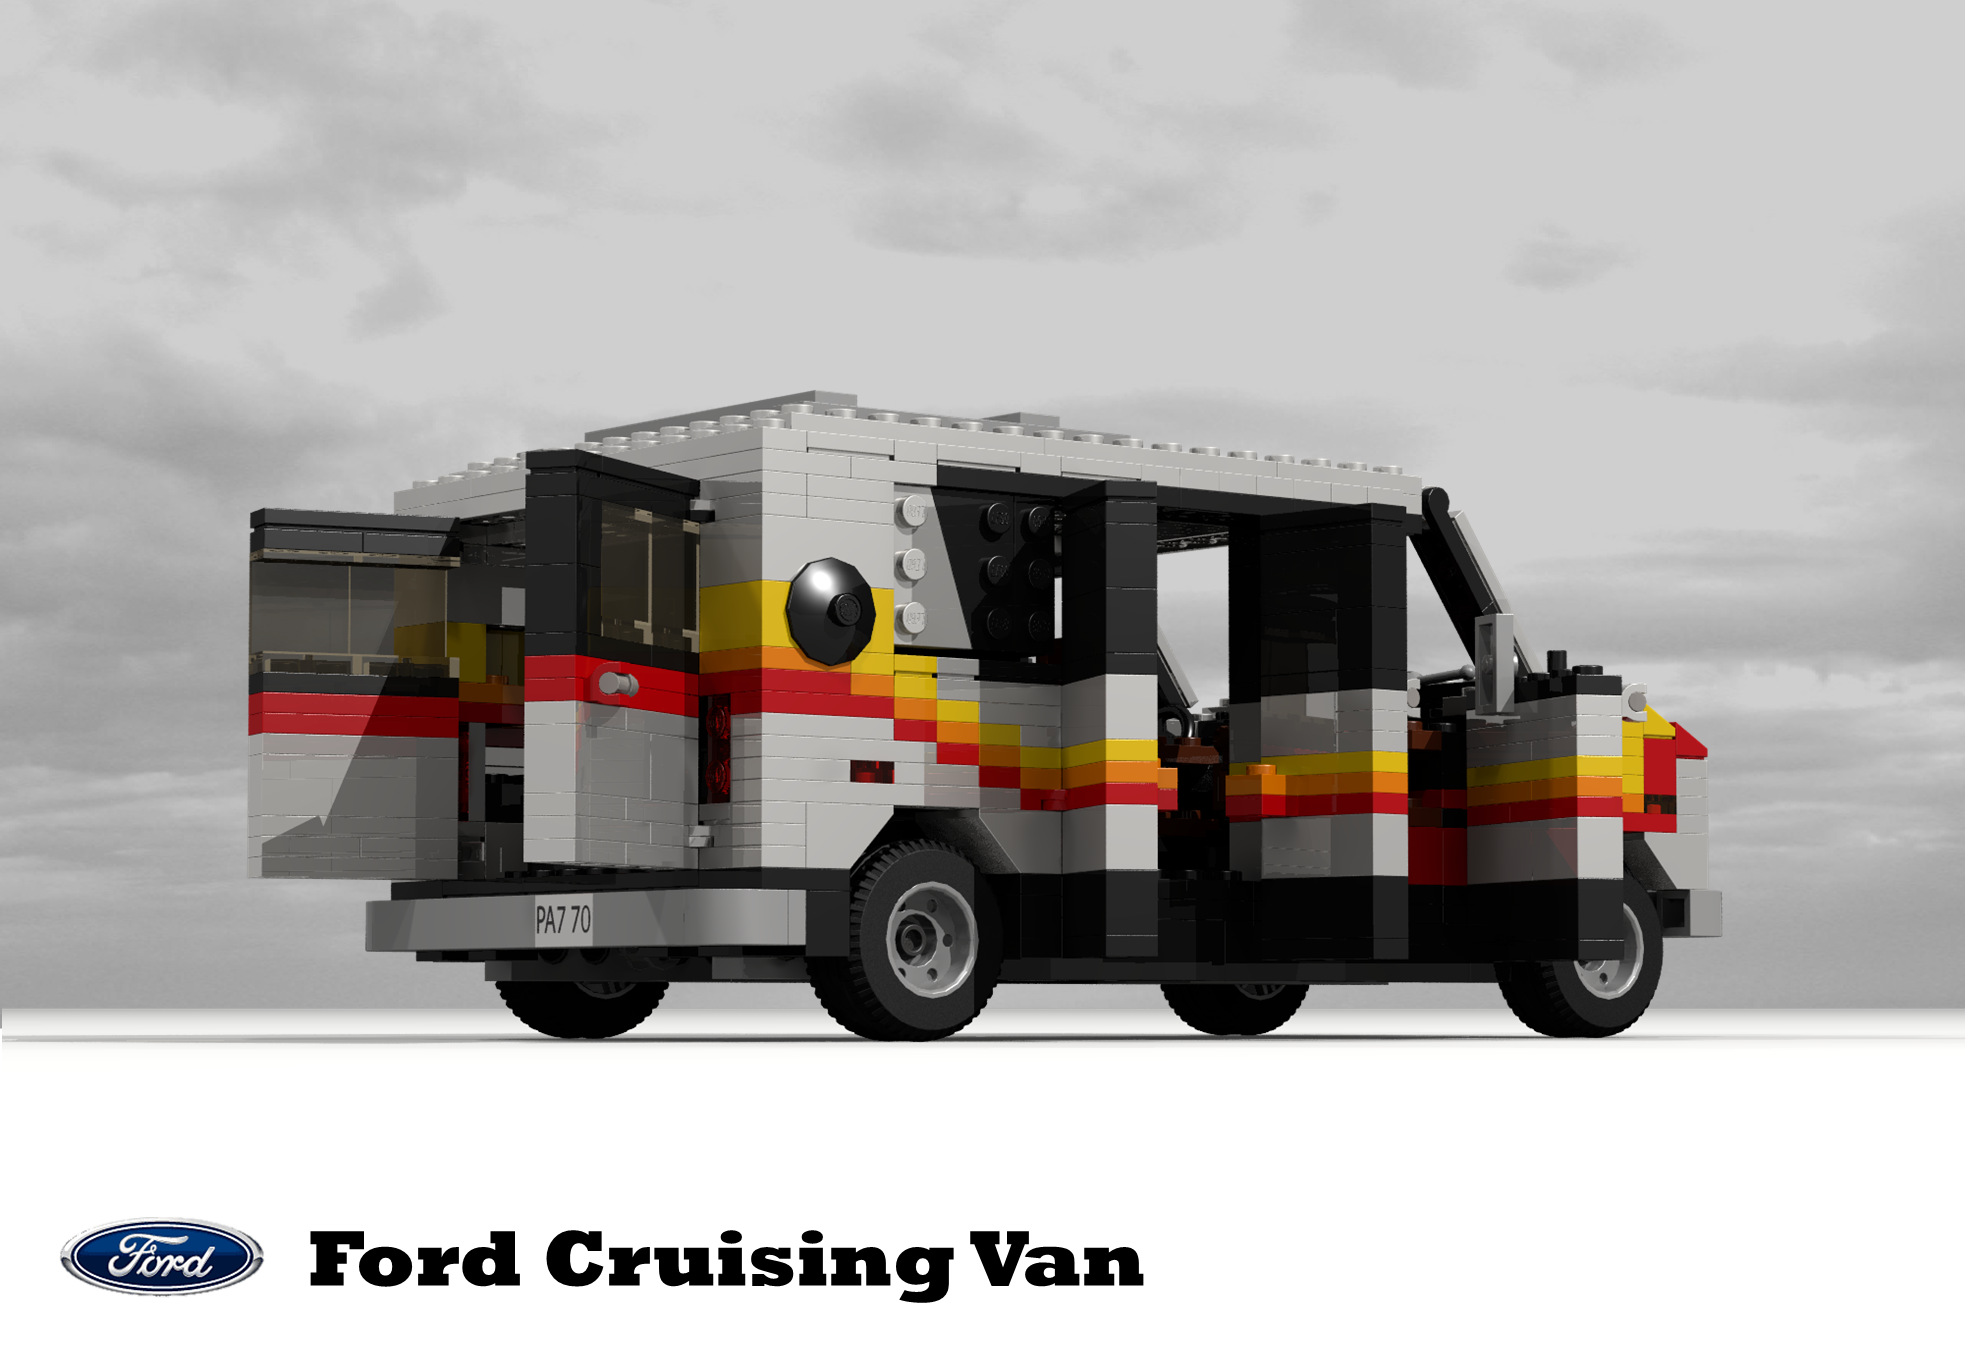 ford_cruising_van_04.png